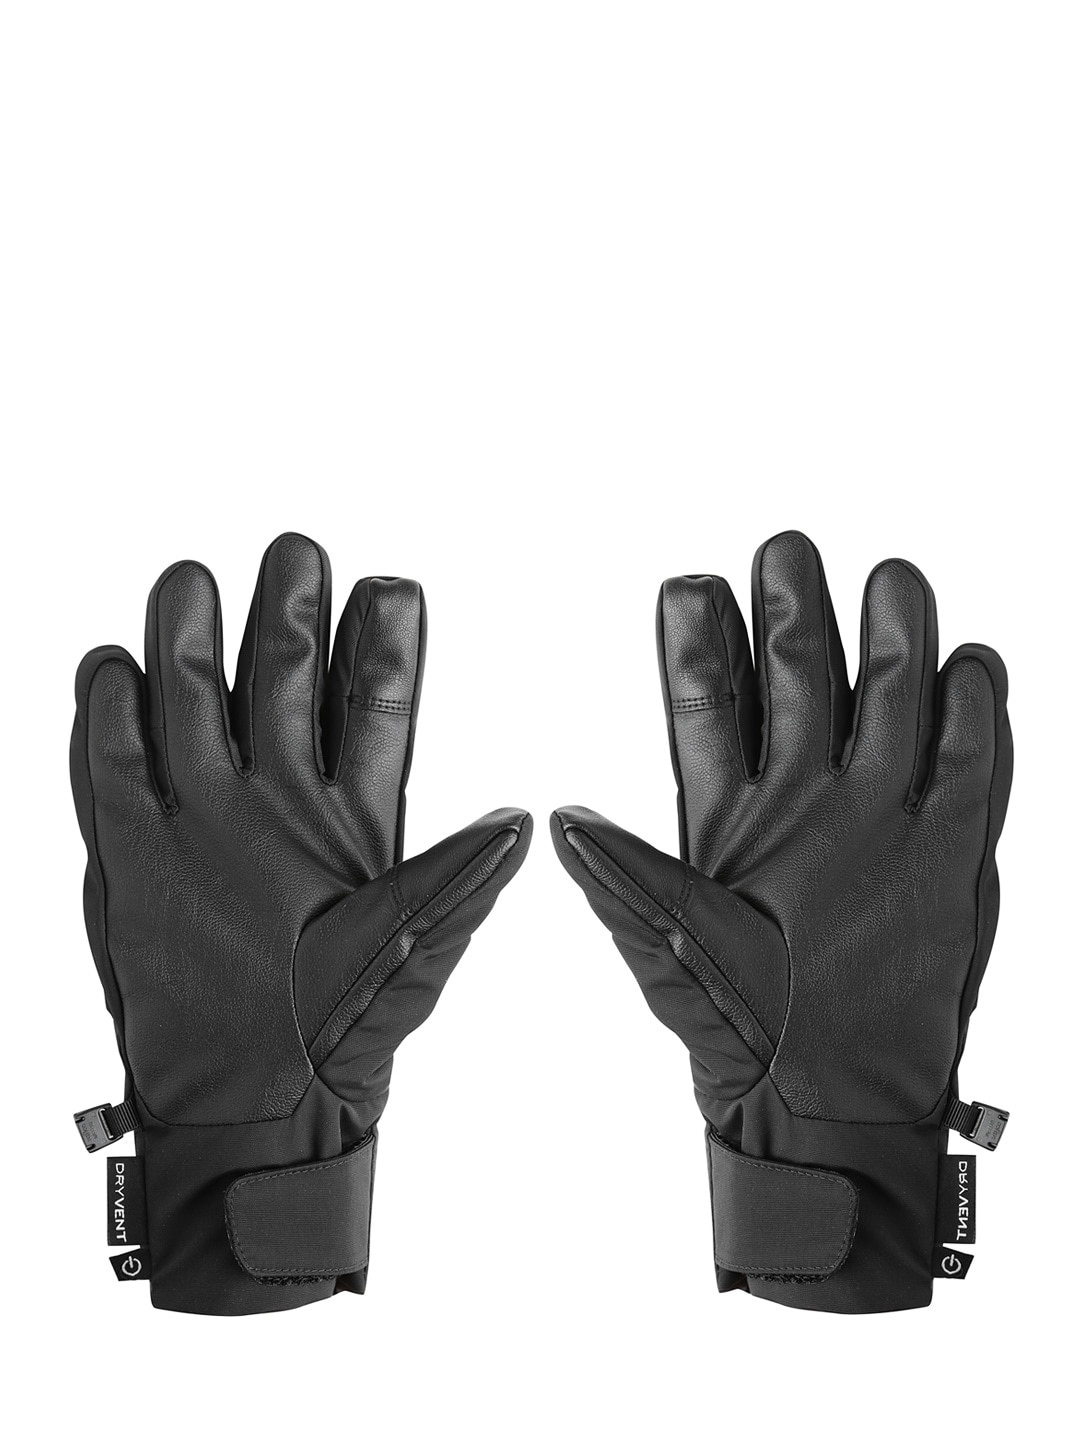 Buy leather hand gloves online india - Buy Leather Hand Gloves Online India 14